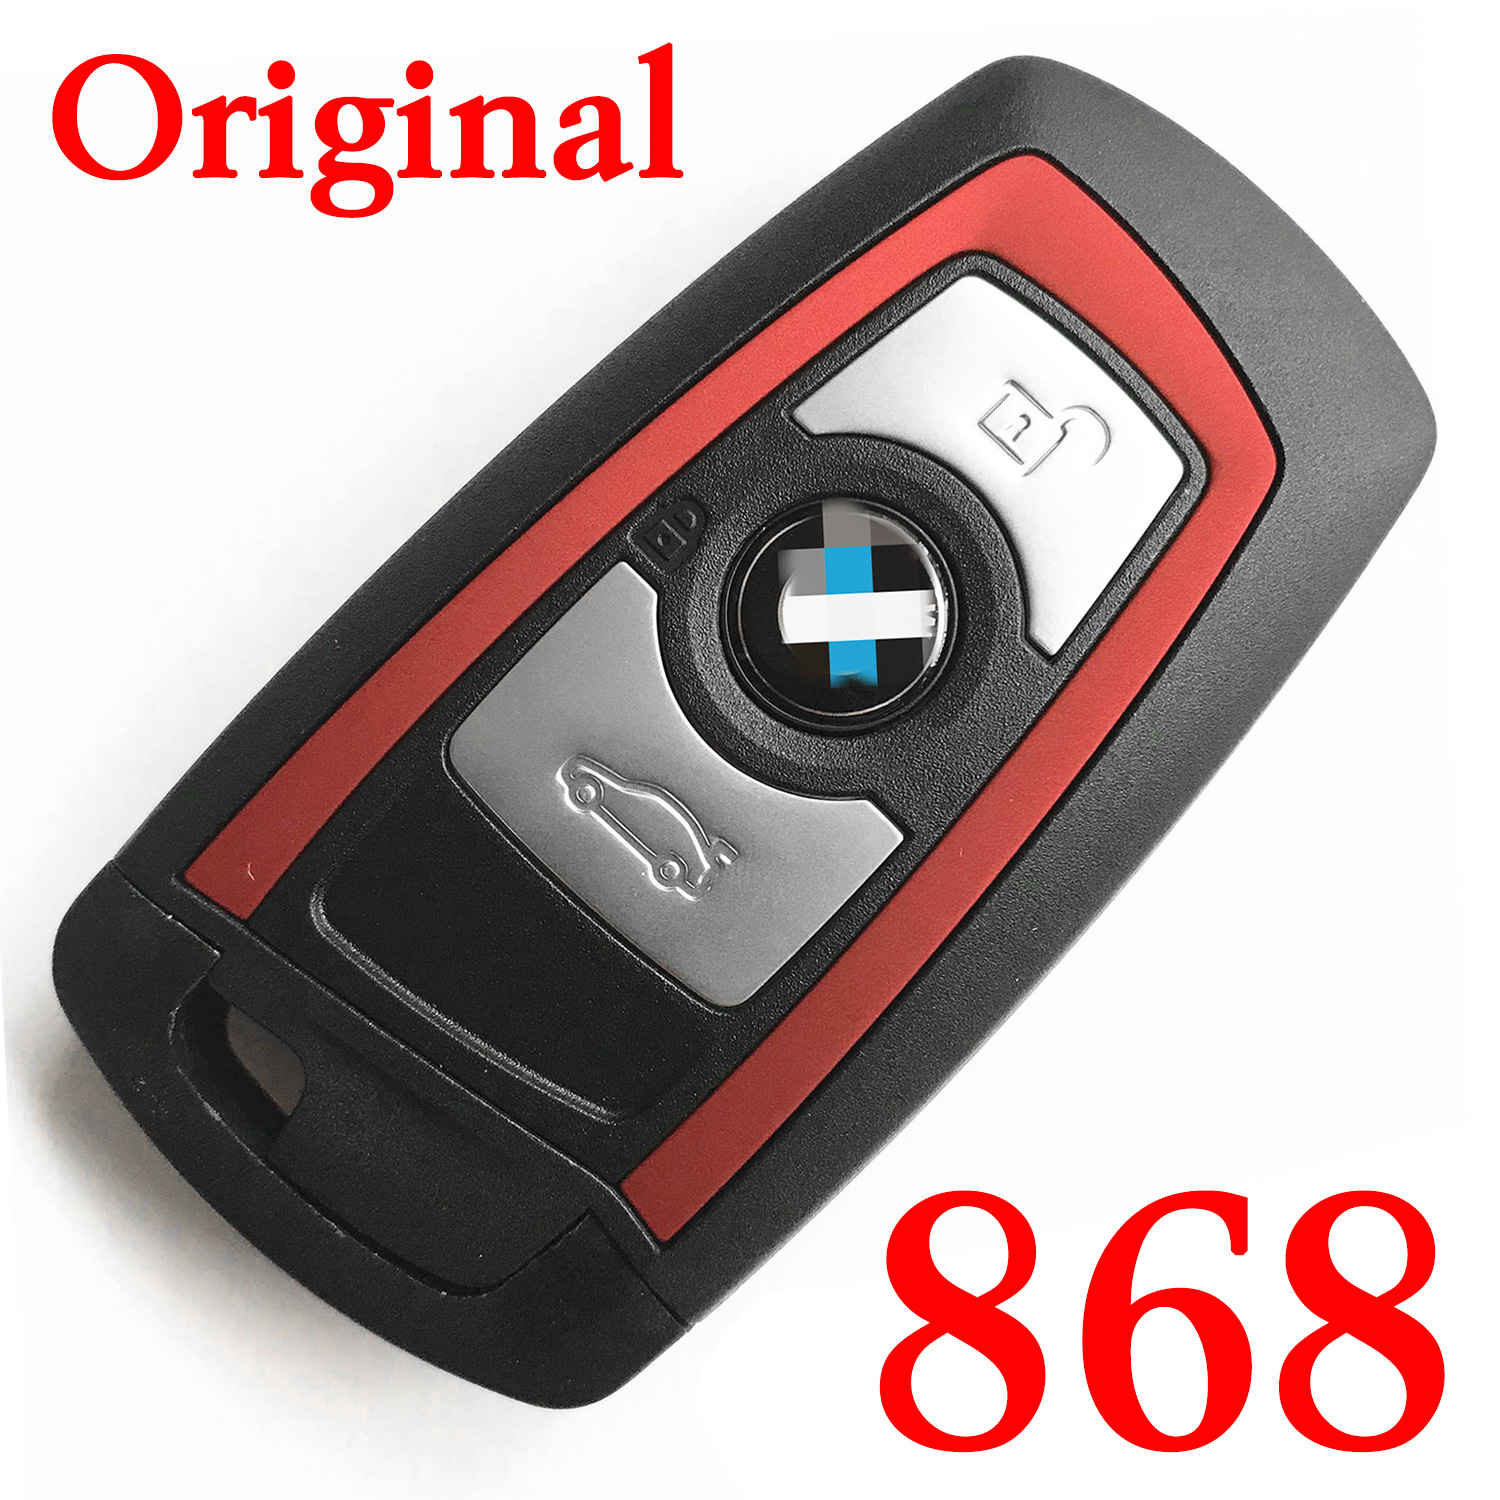 Original 3 Buttons 868 MHz Smart Key for 2009-2014 BMW 7 Series / YGOHUF5767